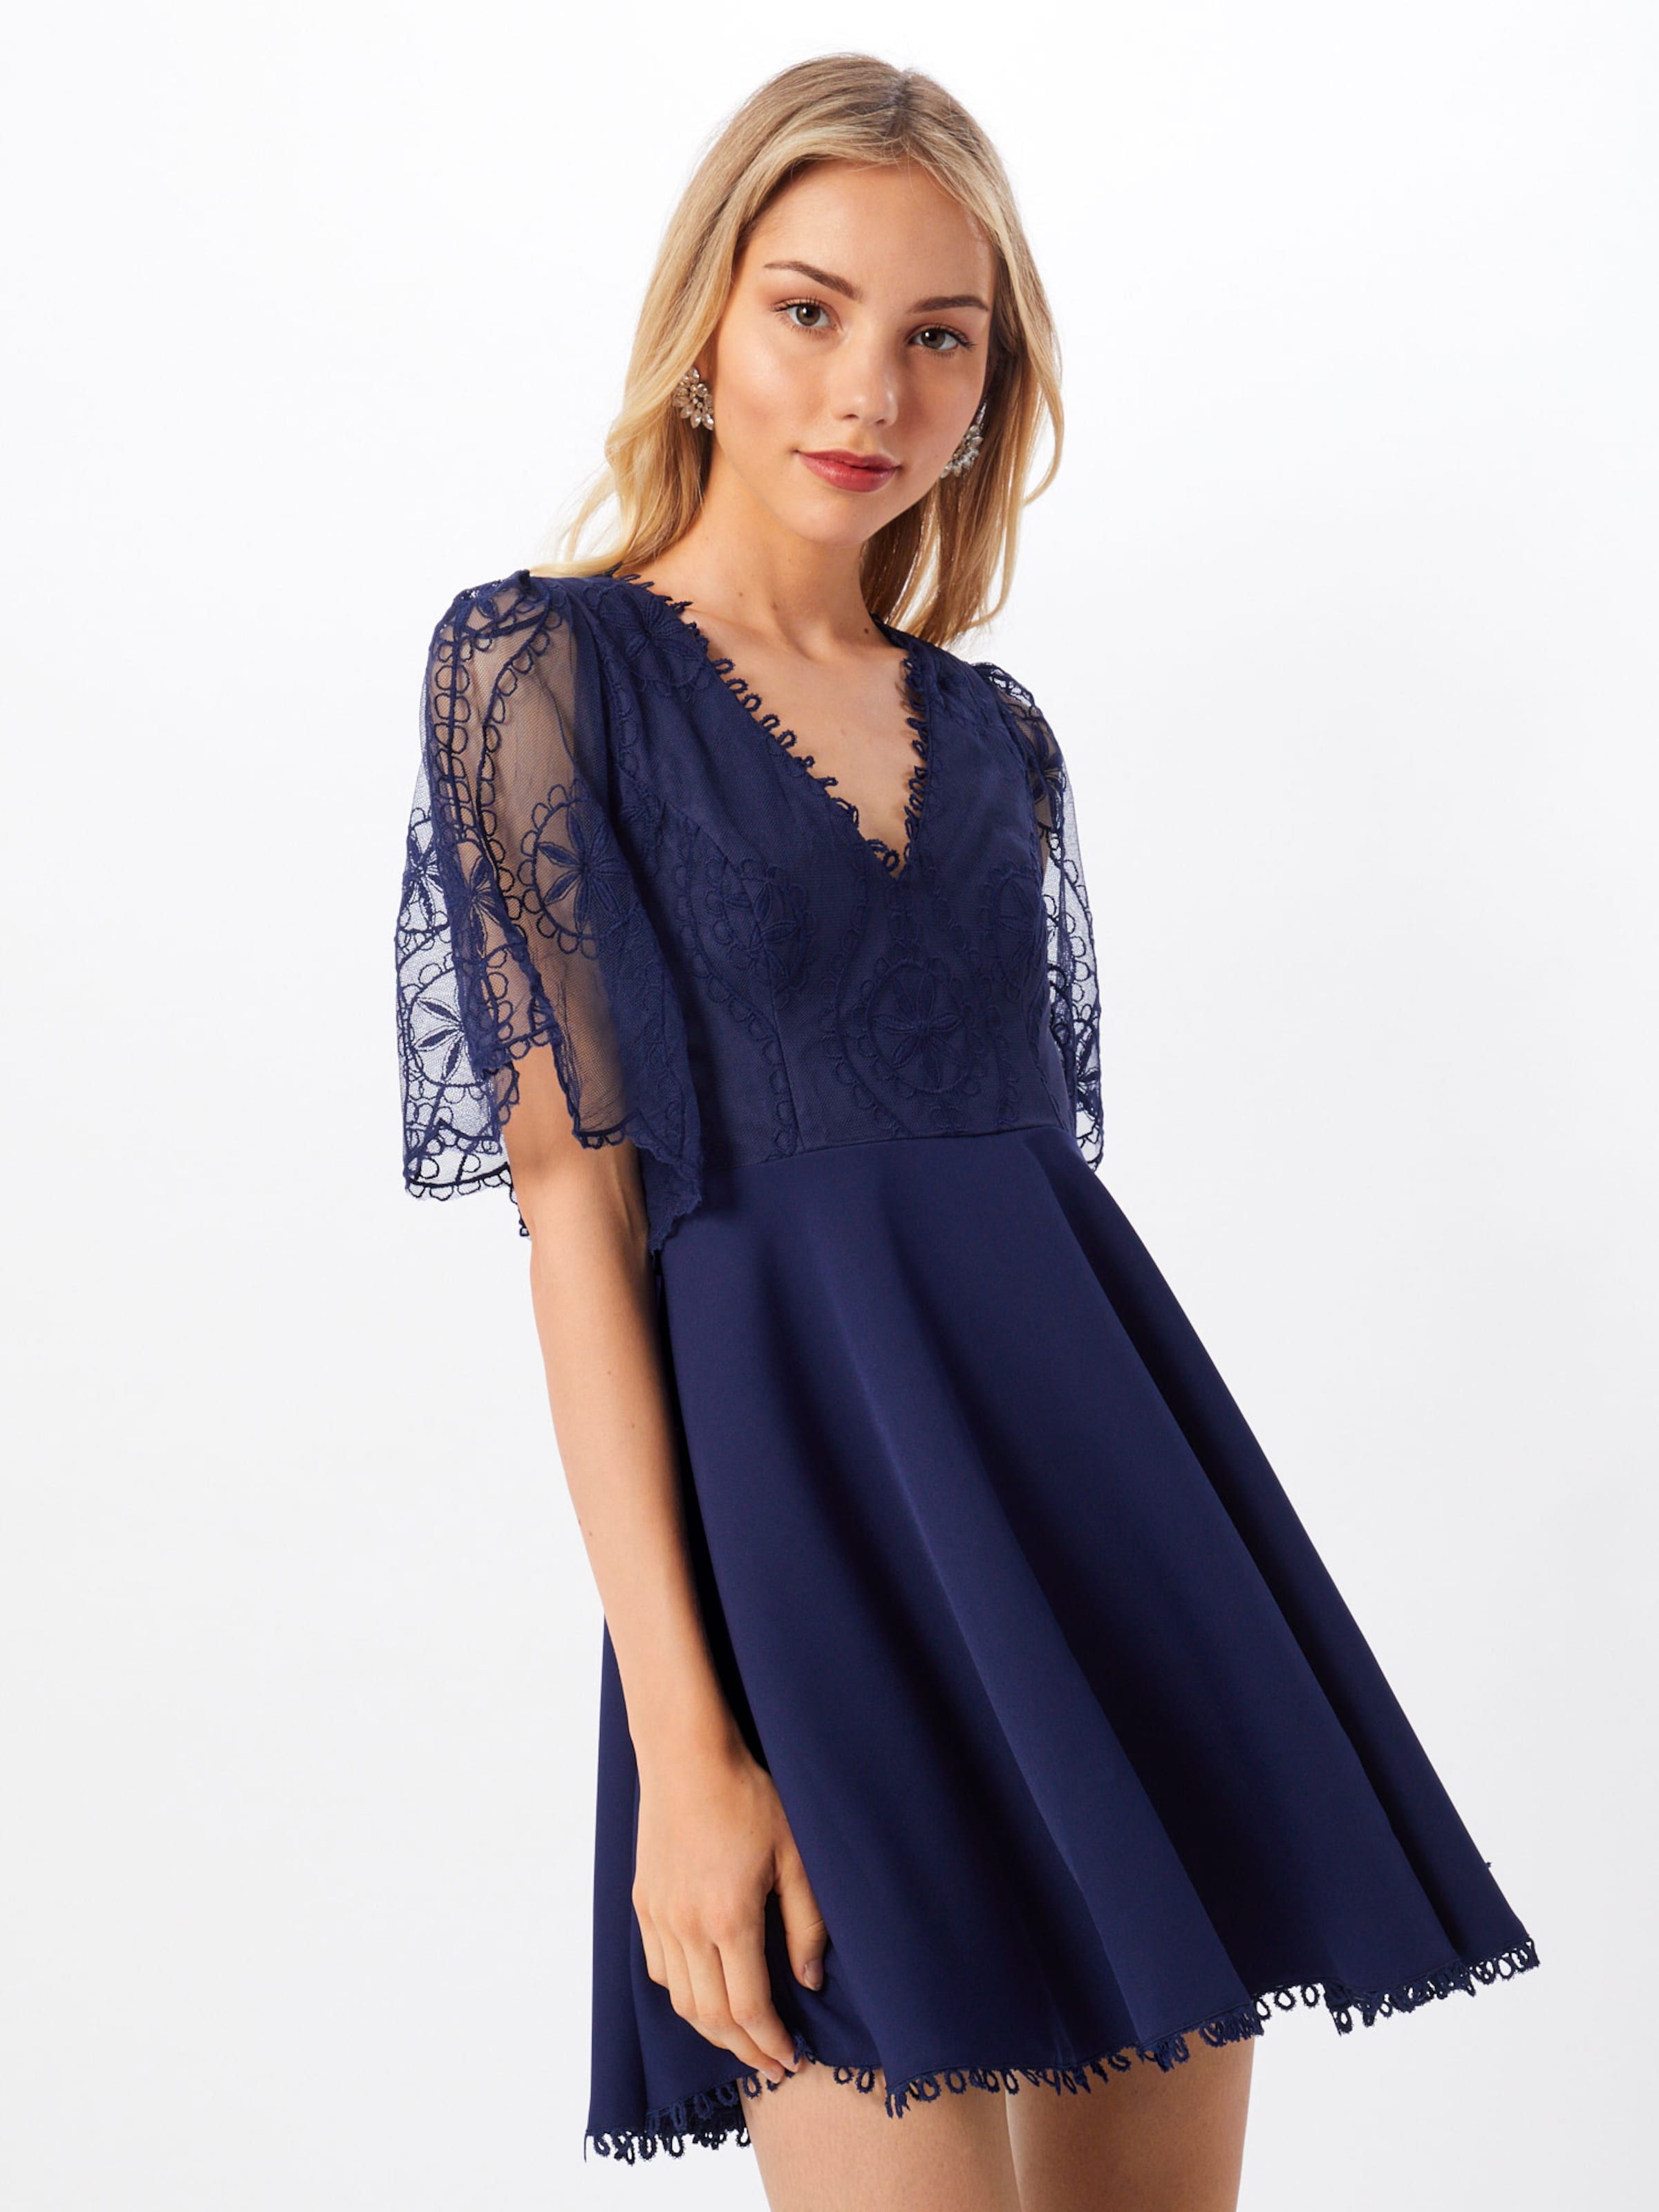 Triangle Kleid Love 'english Dress' In Navy Rose xoderWCB